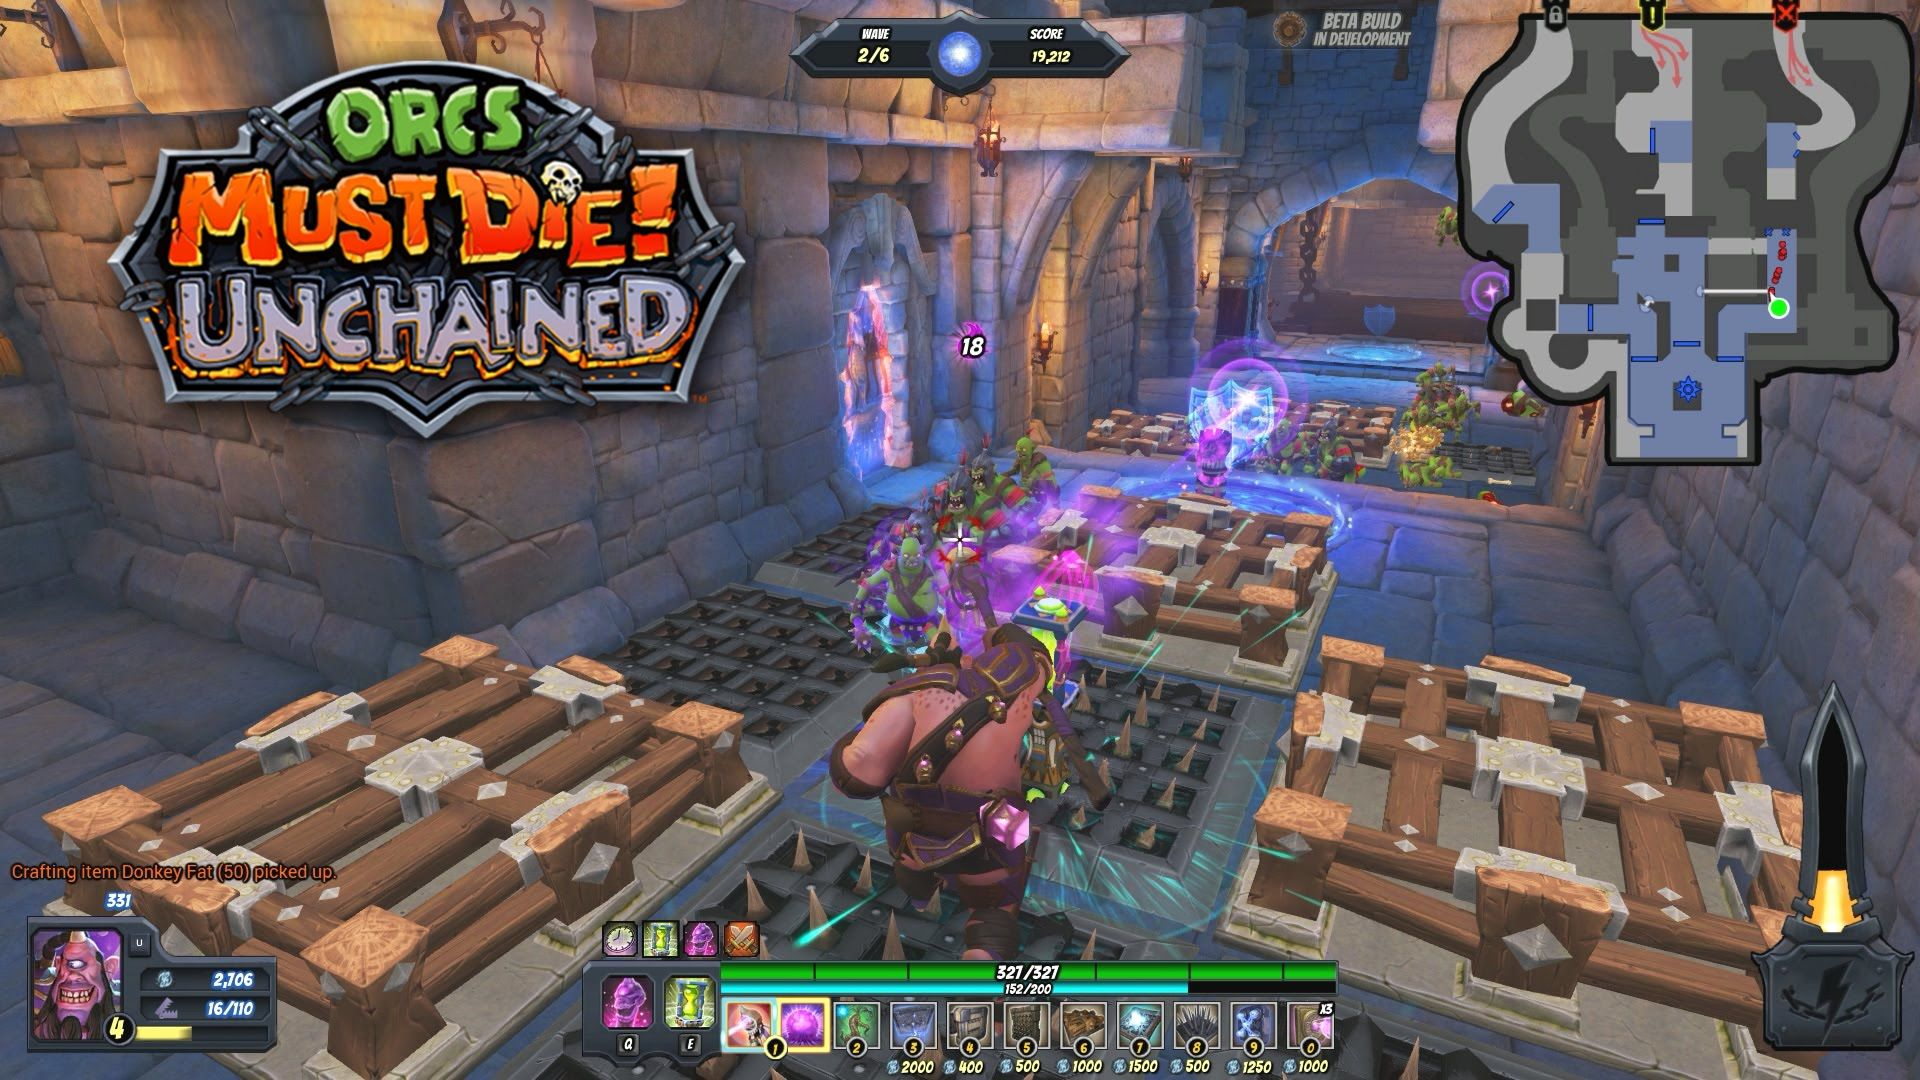 Orcs Must Die Unchained 2016 Mobygames 10